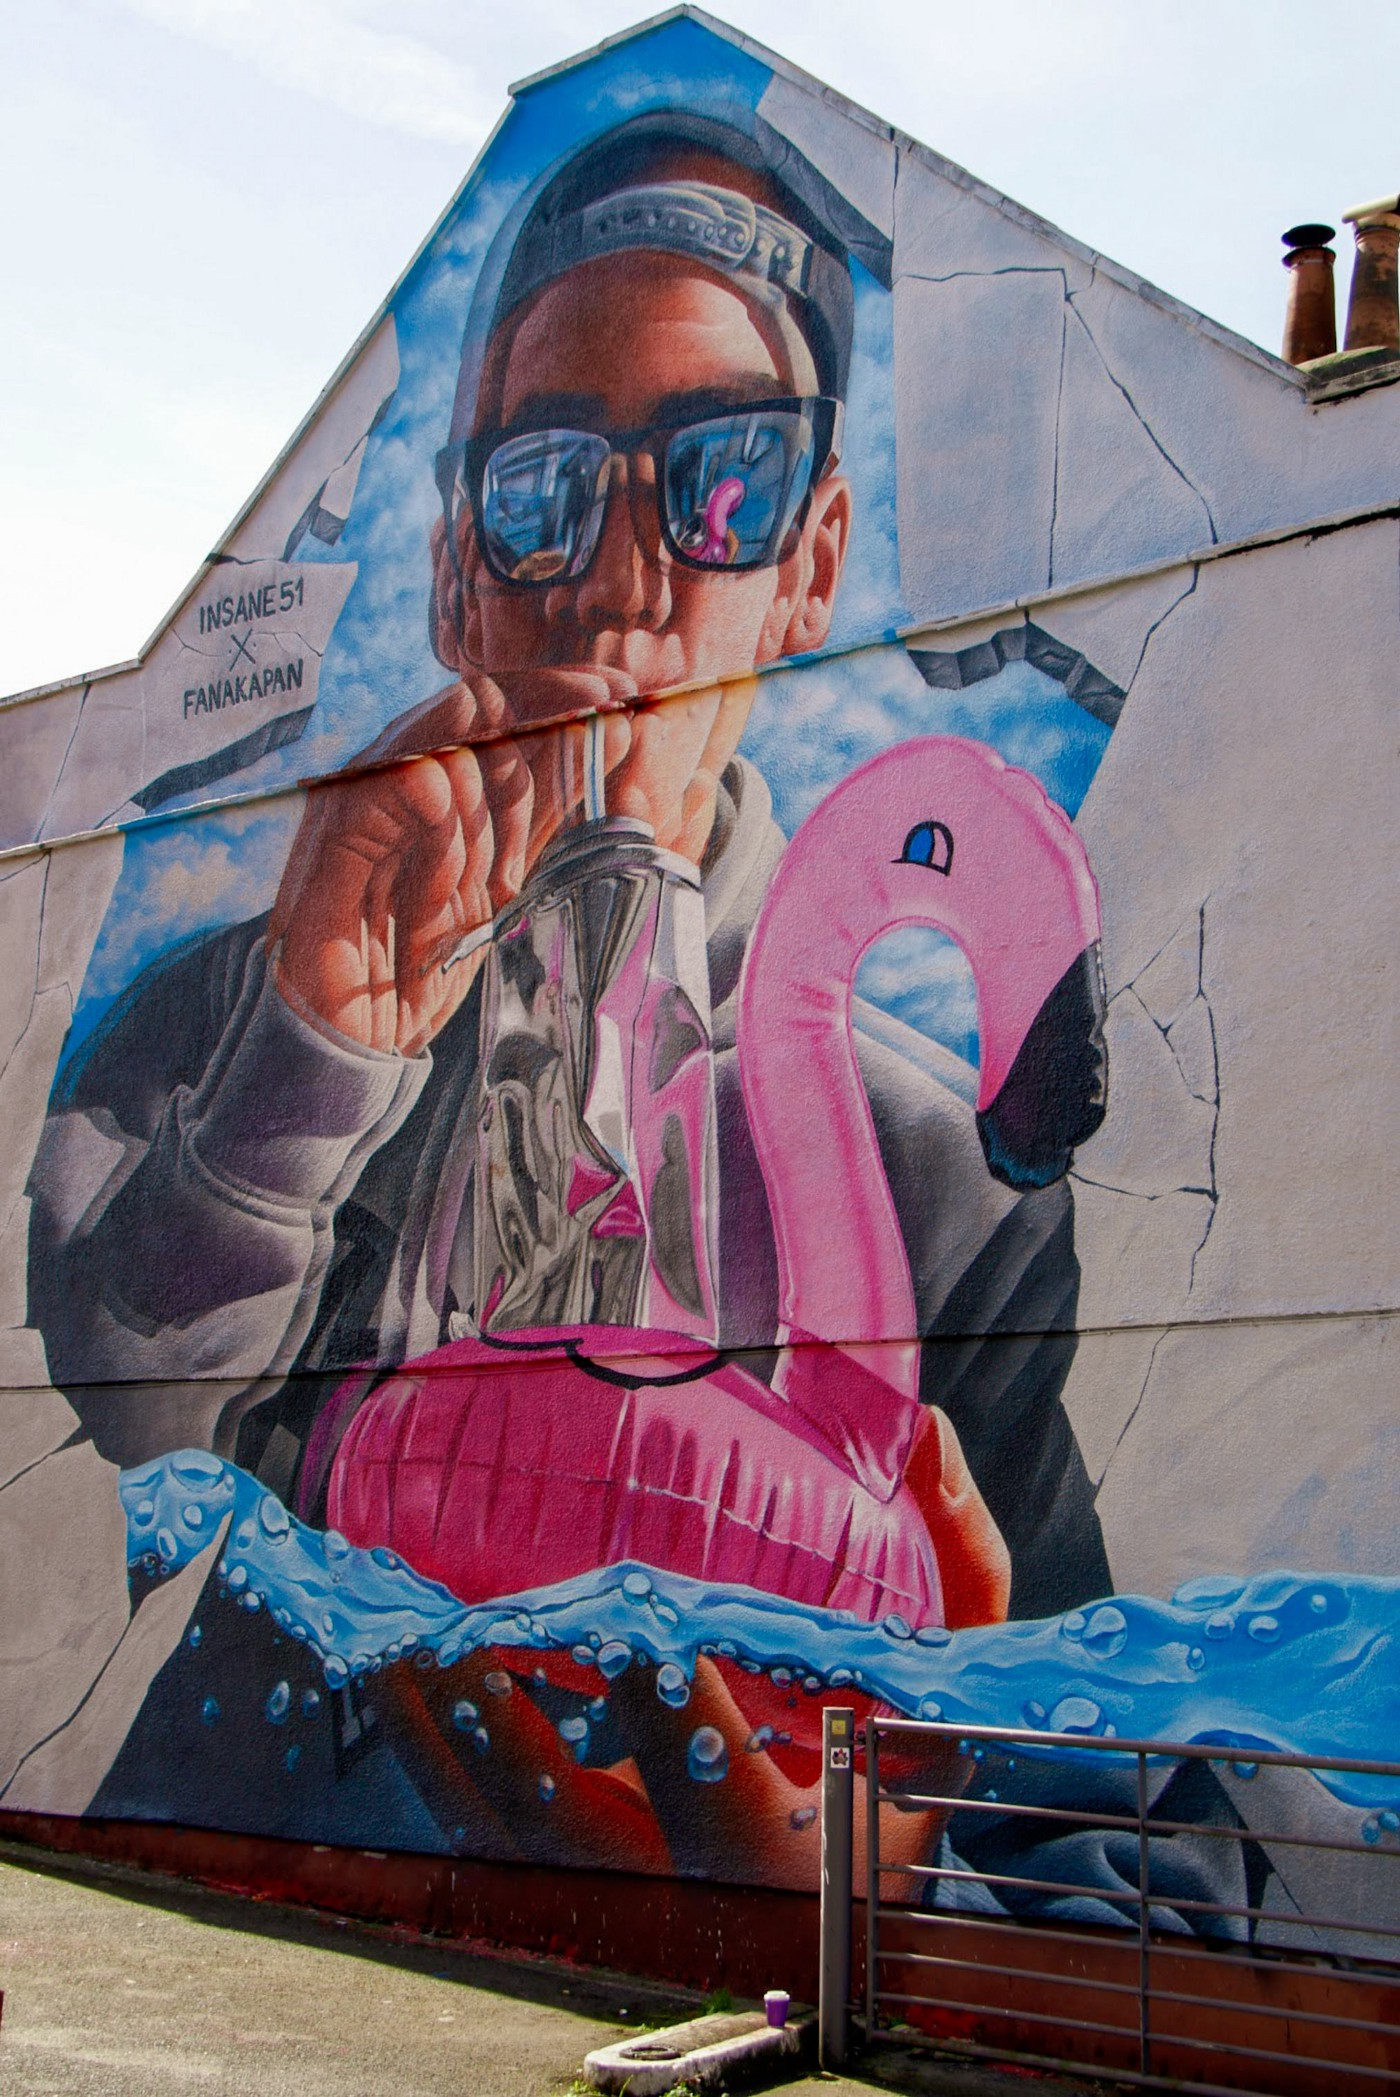 A mural of a man with sunglasses blowing up a pink inflatable flamingo.